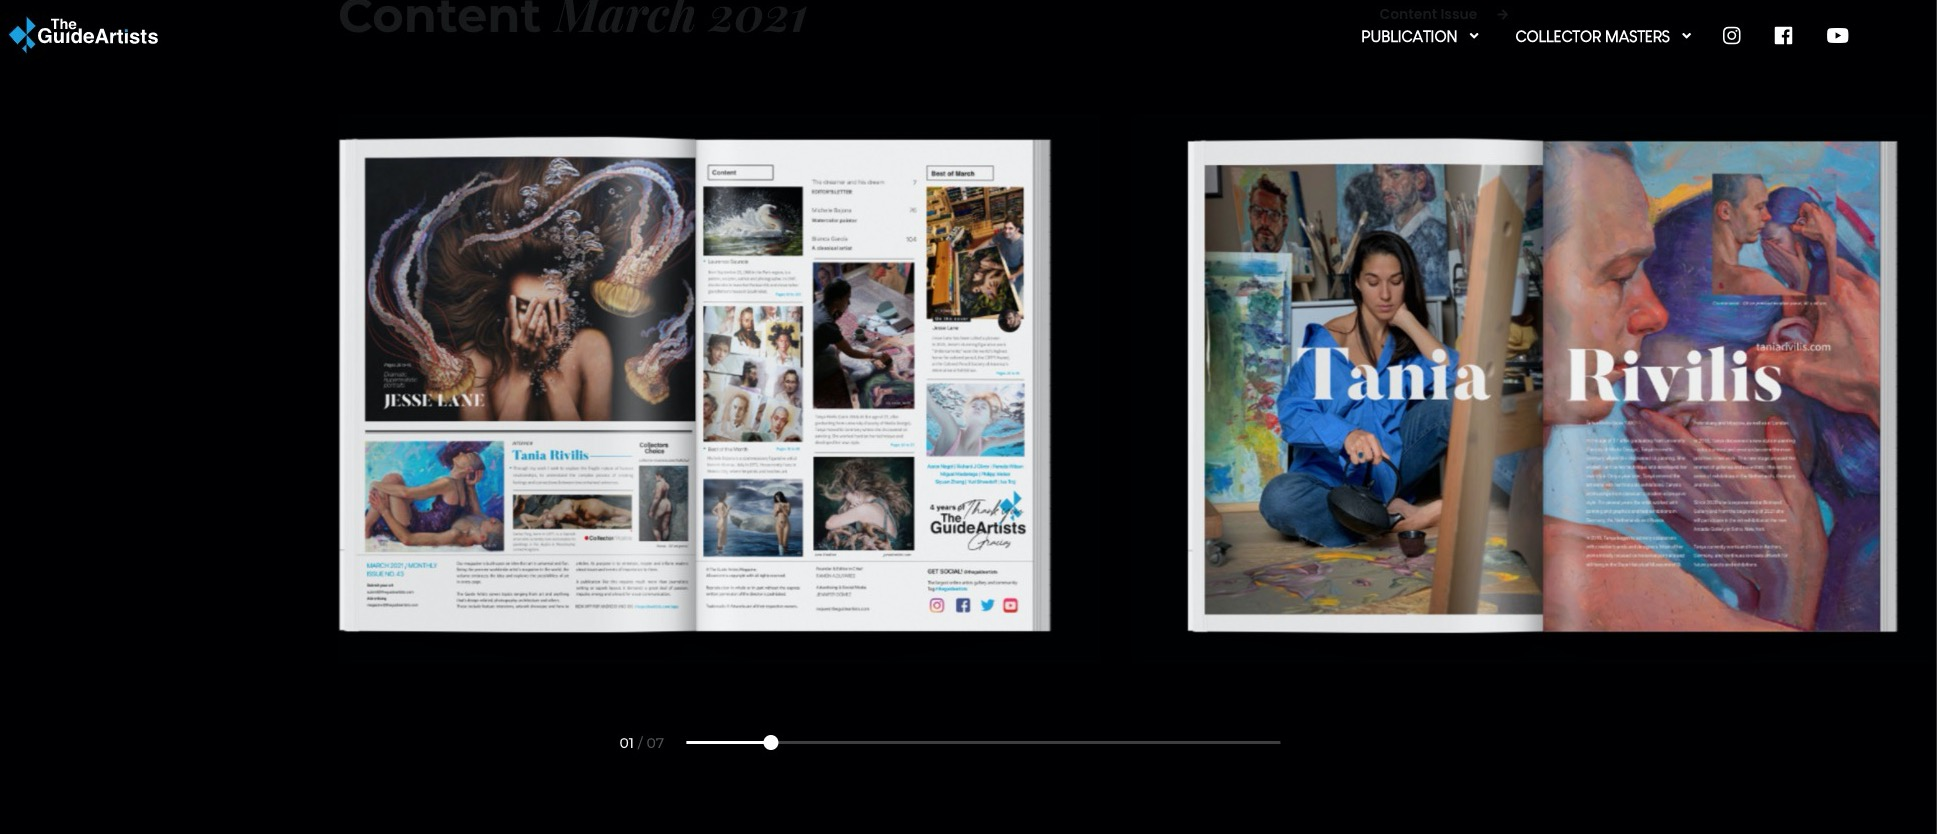 tania rivilis interview the guide artists magazine